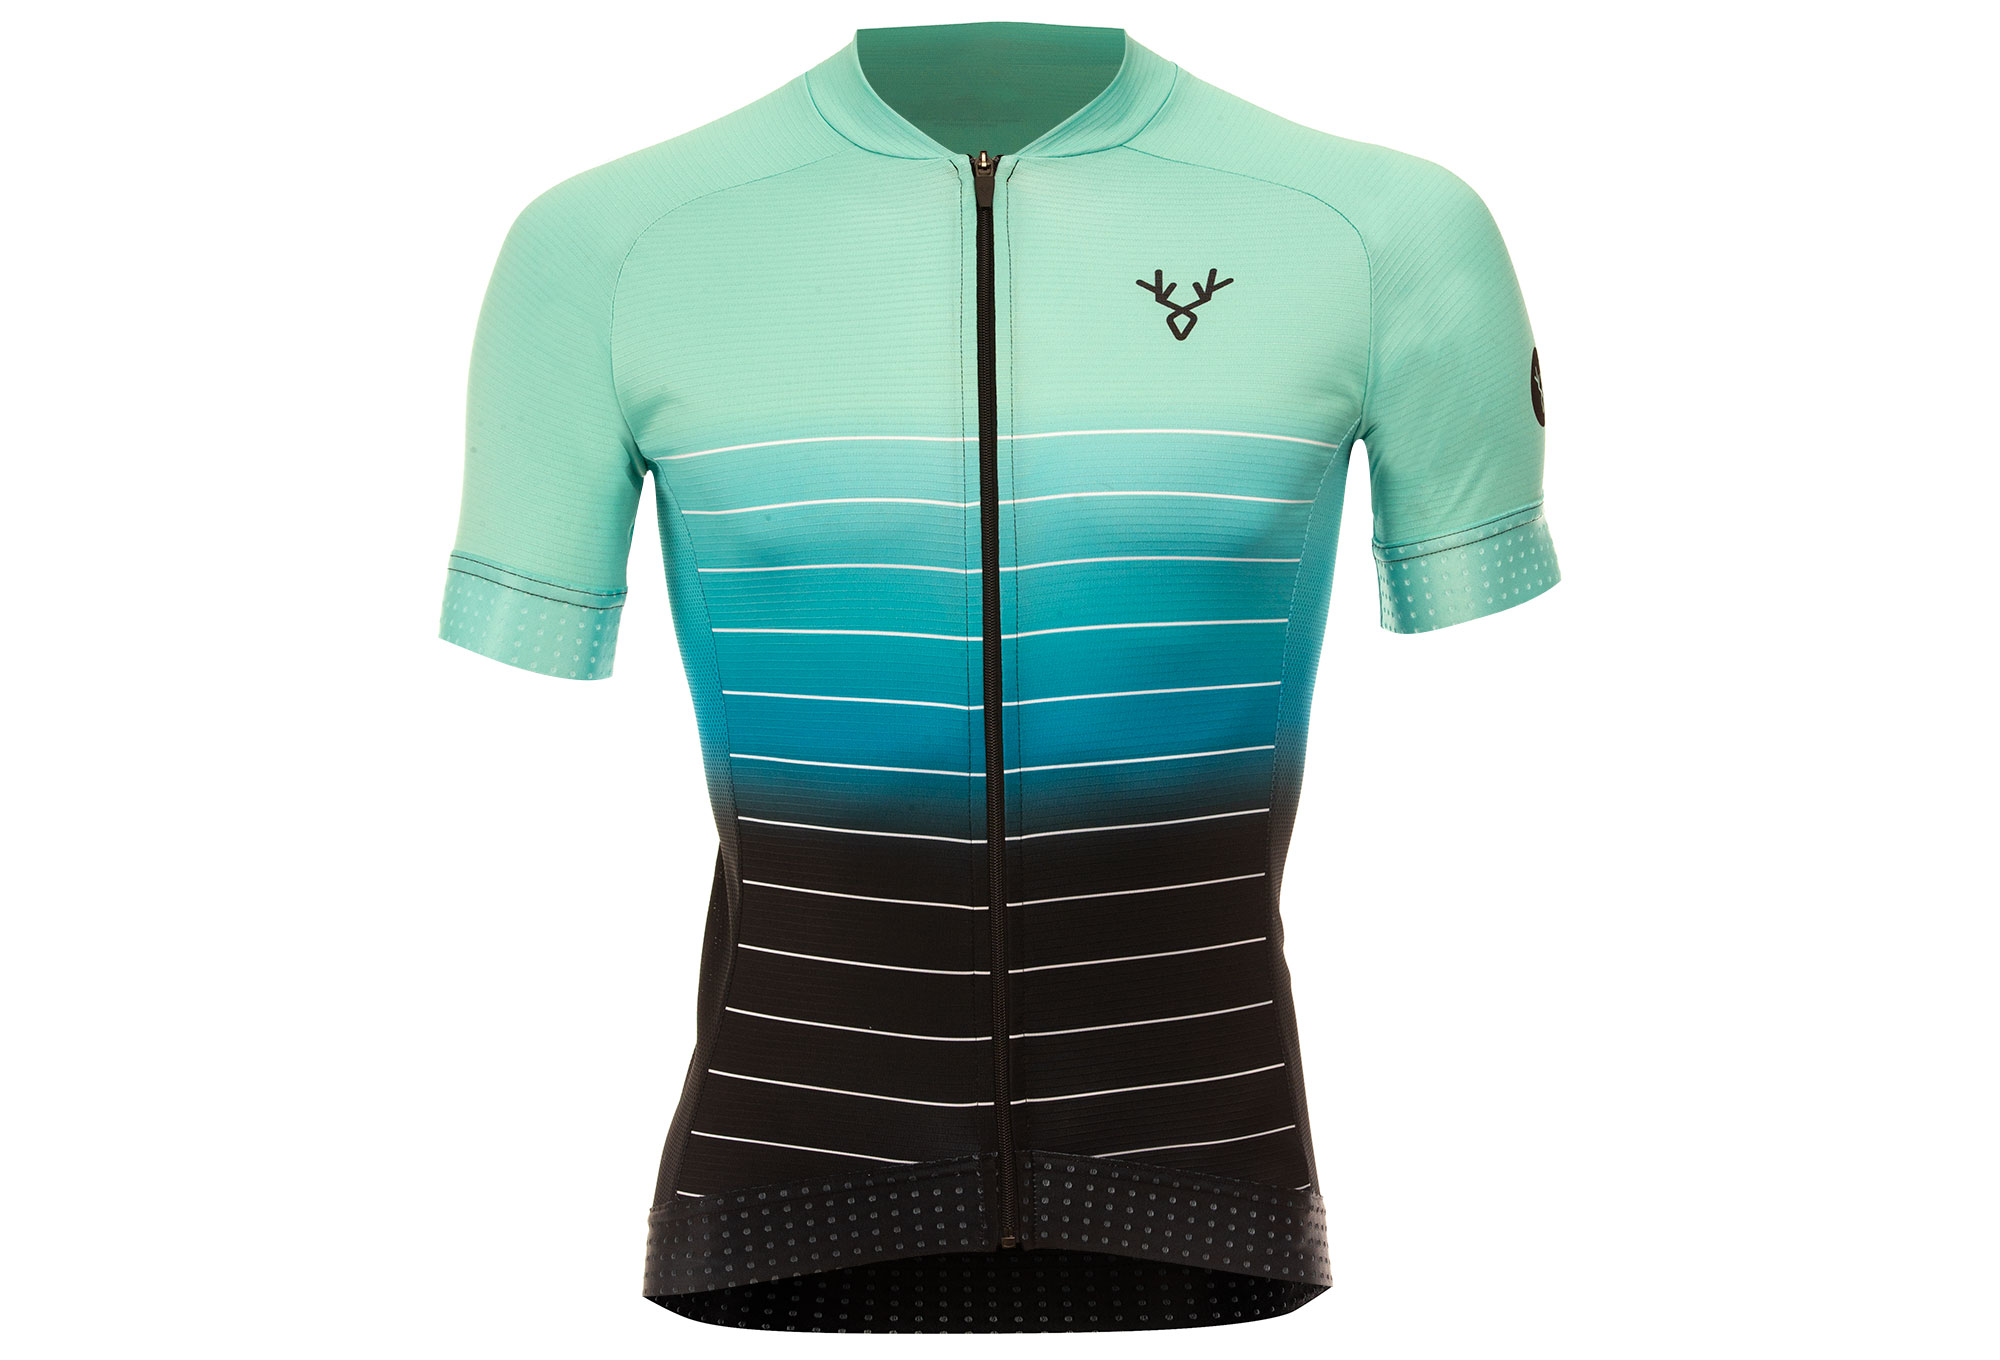 HOMME_ECRE_TURQUOISE2